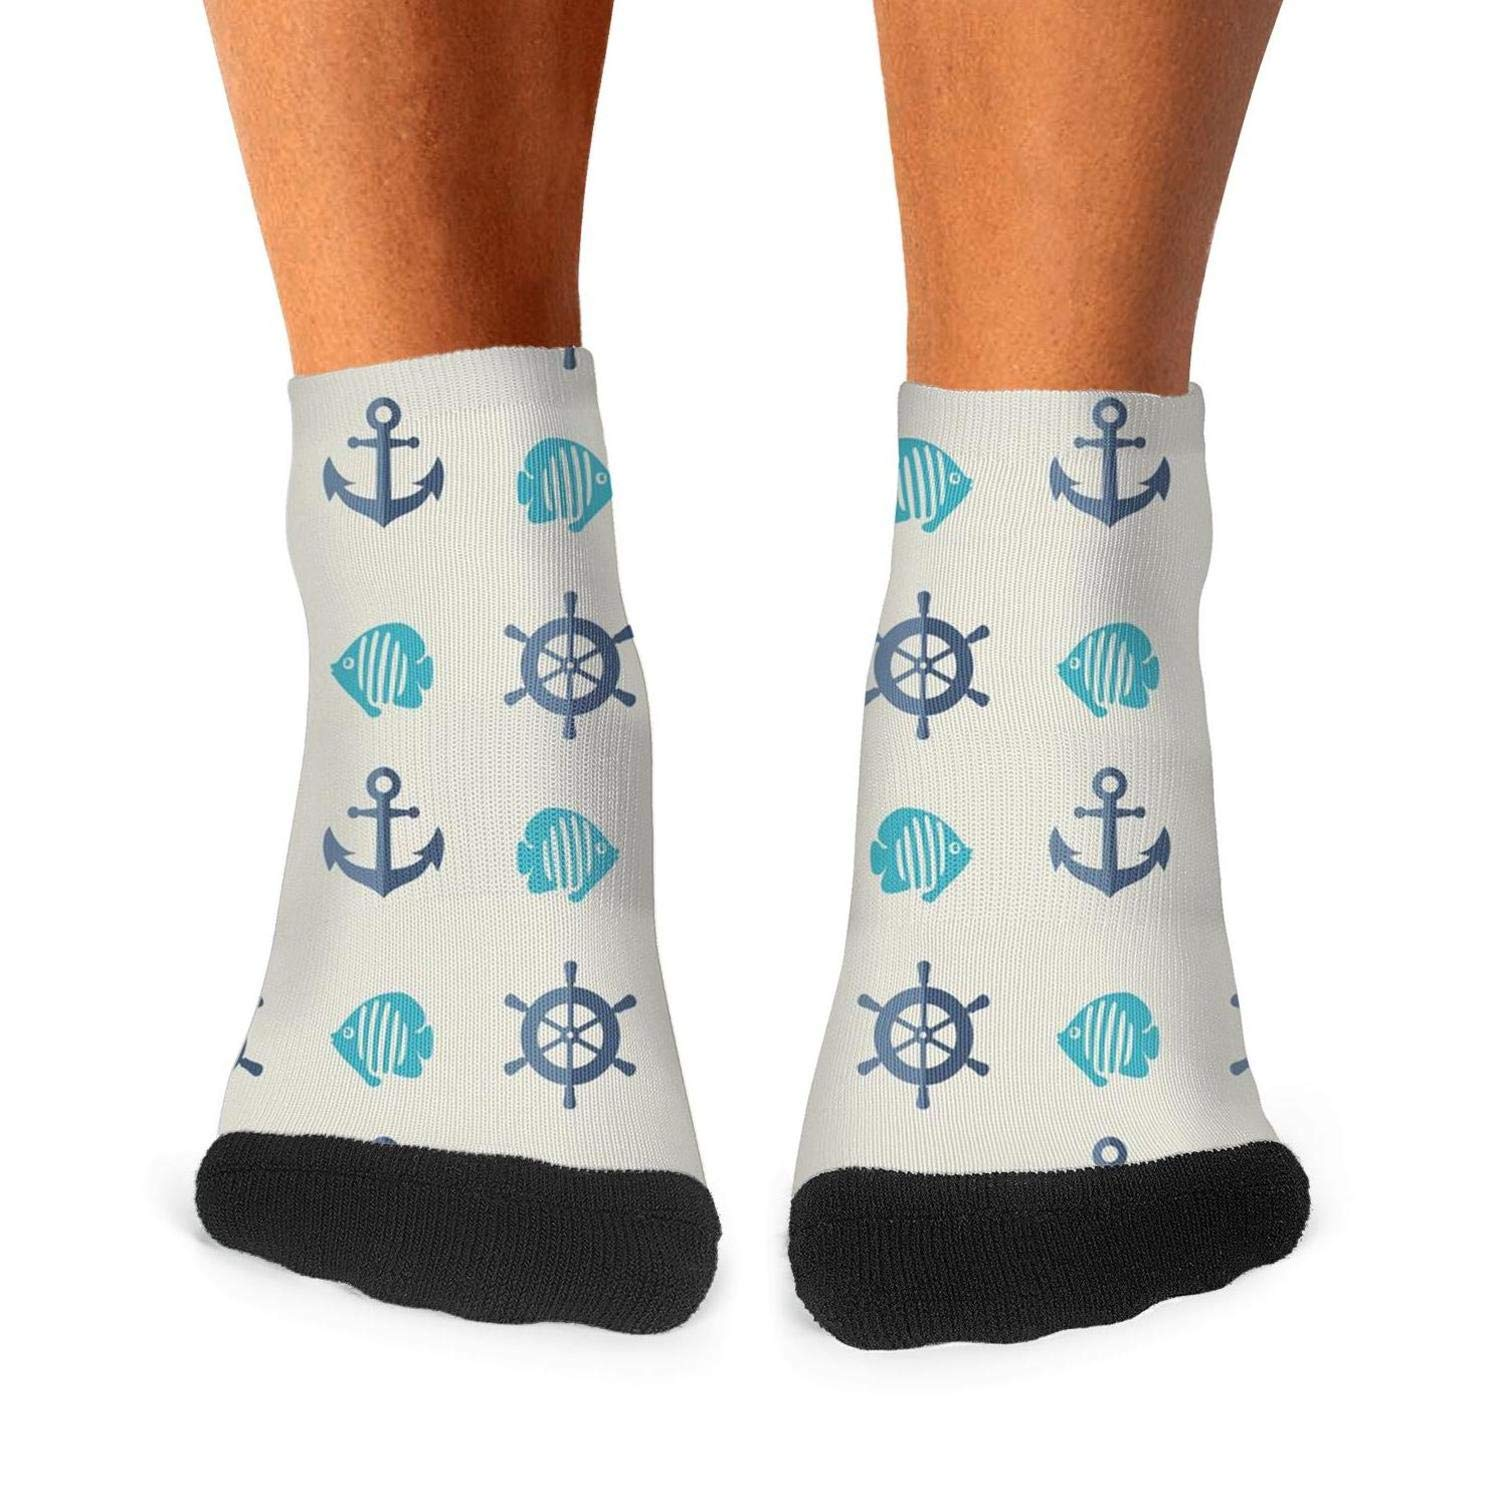 Floowyerion Mens Anchor and fish pattern Beige Novelty Sports Socks Crazy Funny Crew Tube Socks